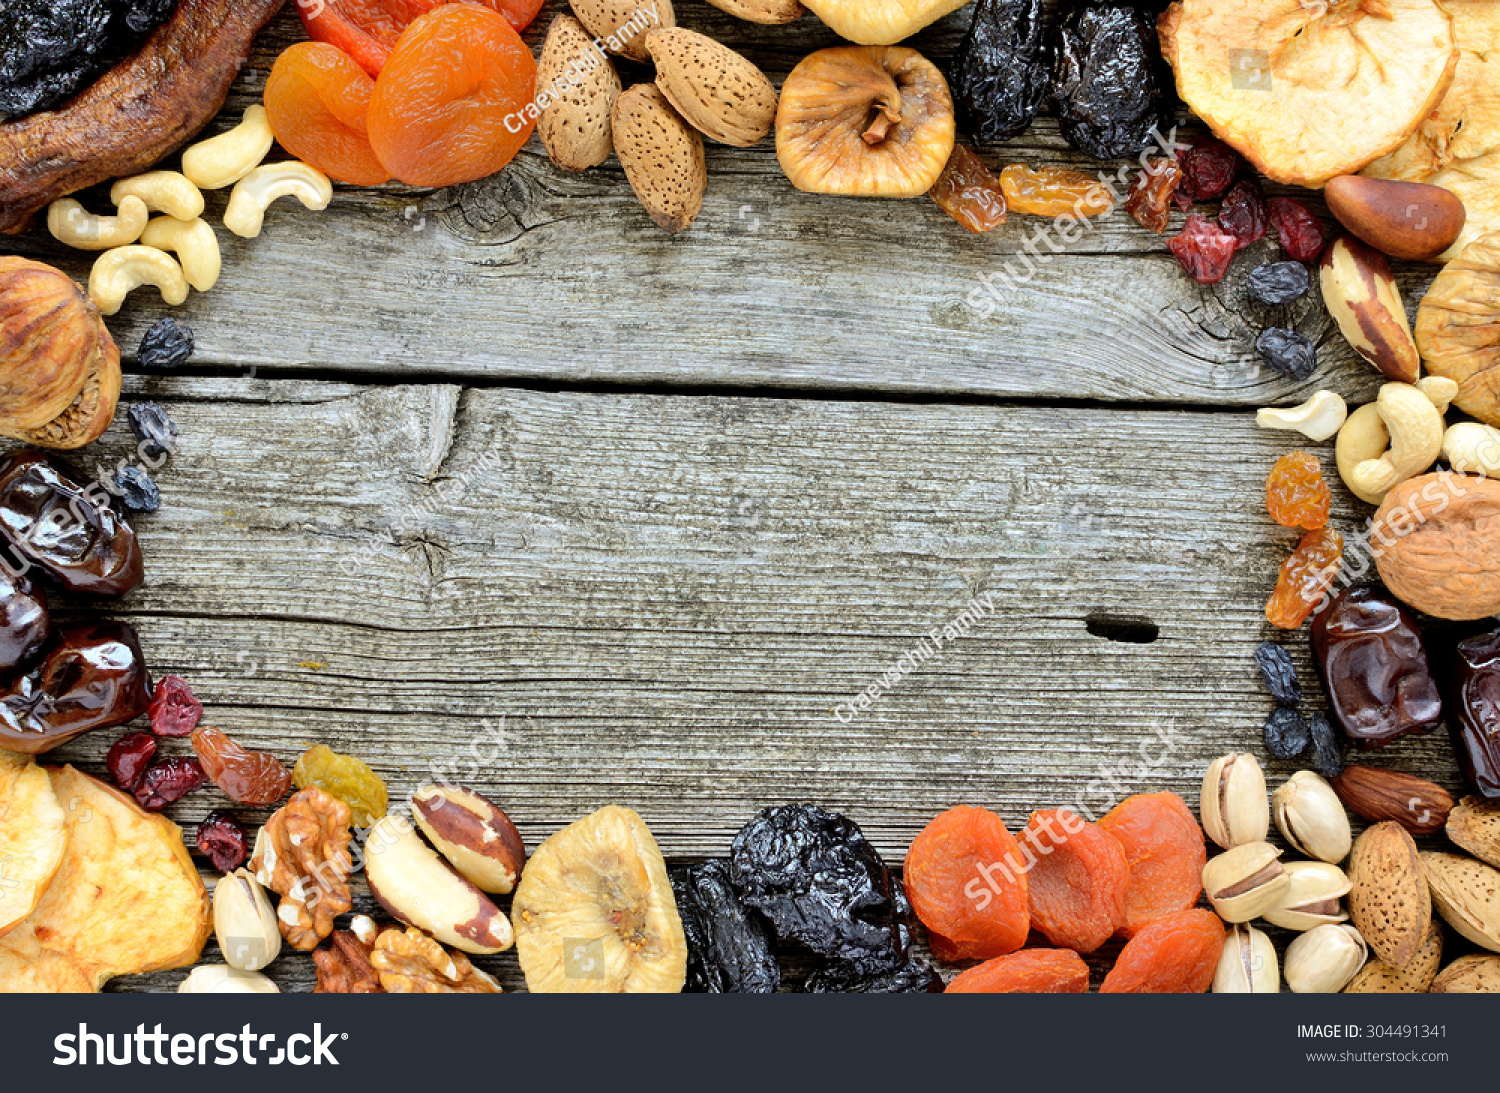 Mix Of Dried Fruits And Nuts - Symbols Of Judaic Holiday ...